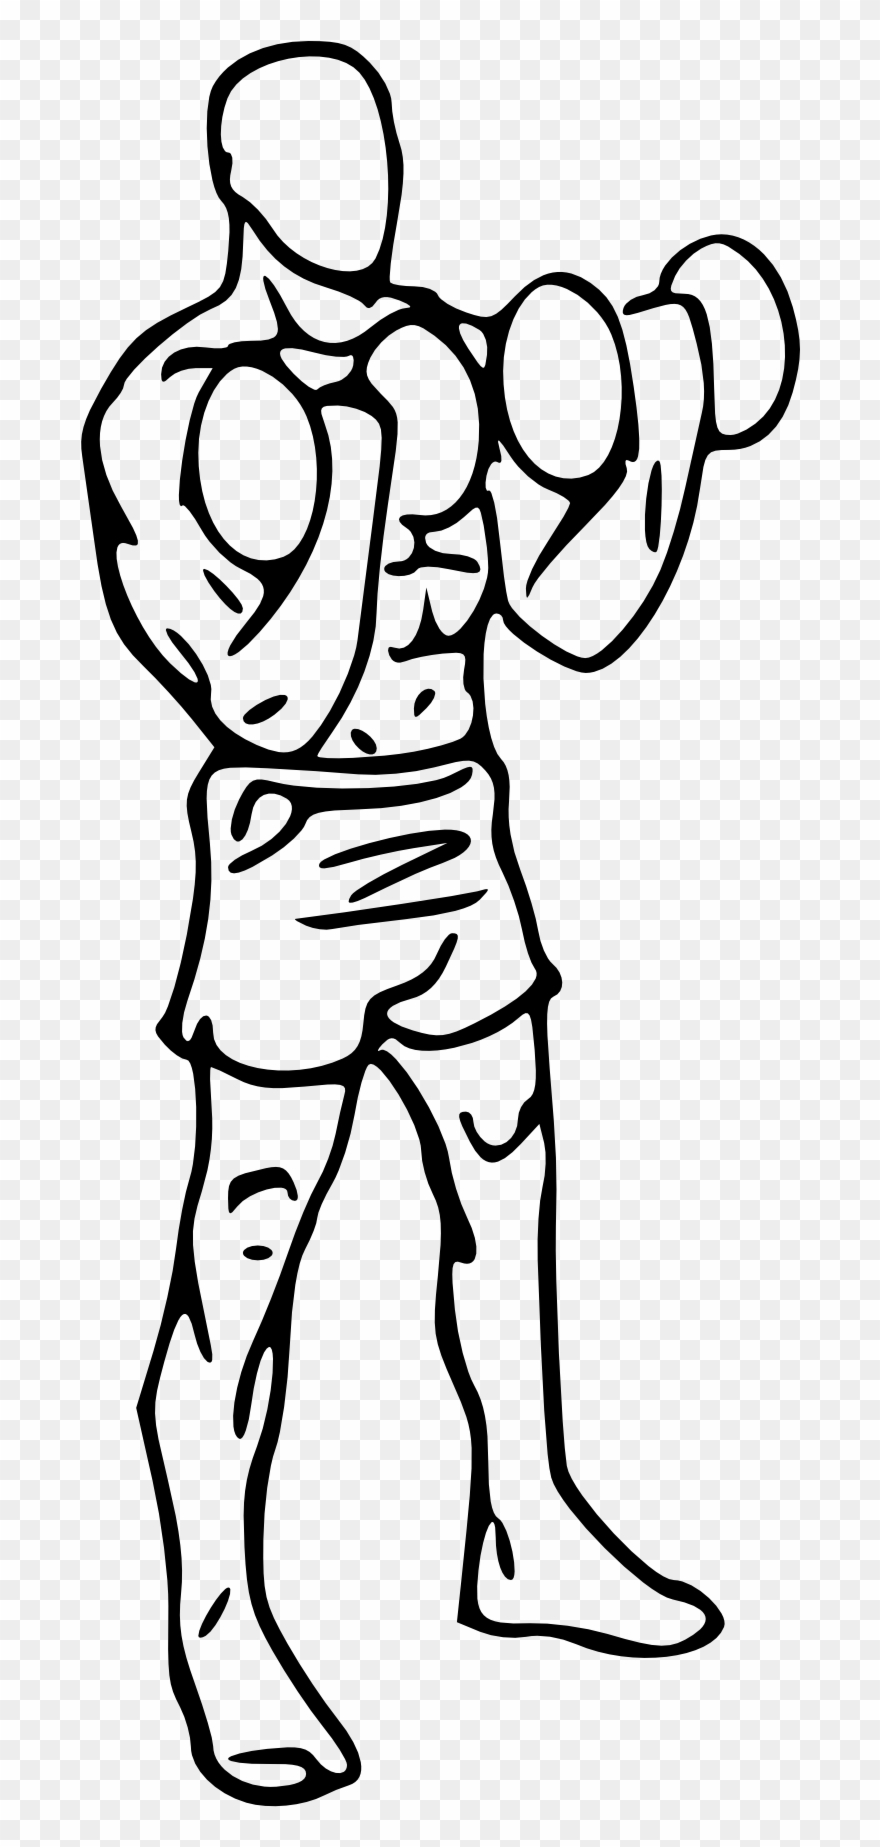 Bb animation biceps curl. Dumbbell clipart animated